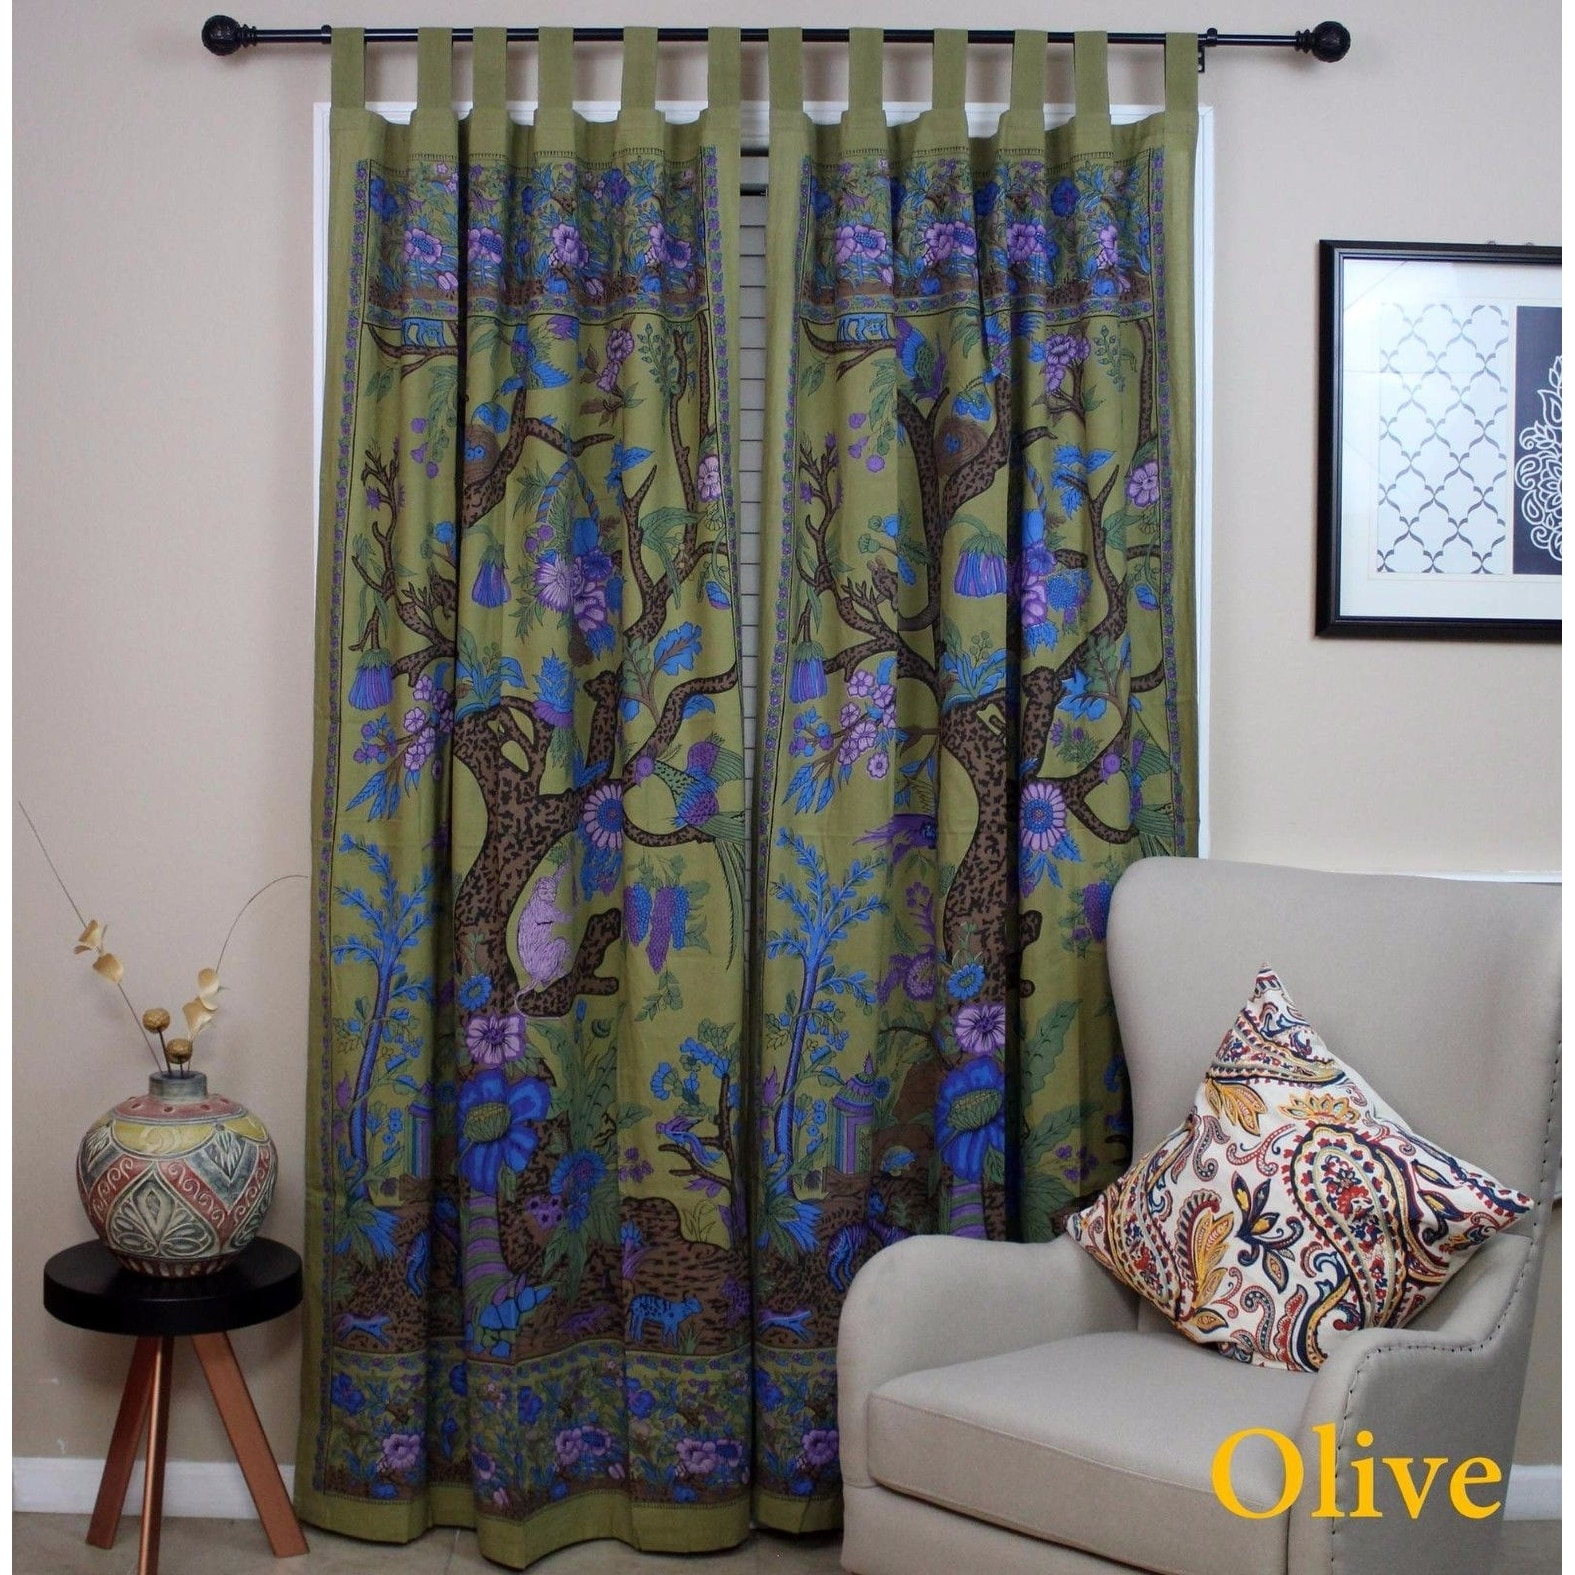 Handmade 100% Cotton Tree of Life Tab Top Curtain Drape Panel - 8 Color options - Black Gold Blue Purple Tan - 44 x 88 inches - Thumbnail 8